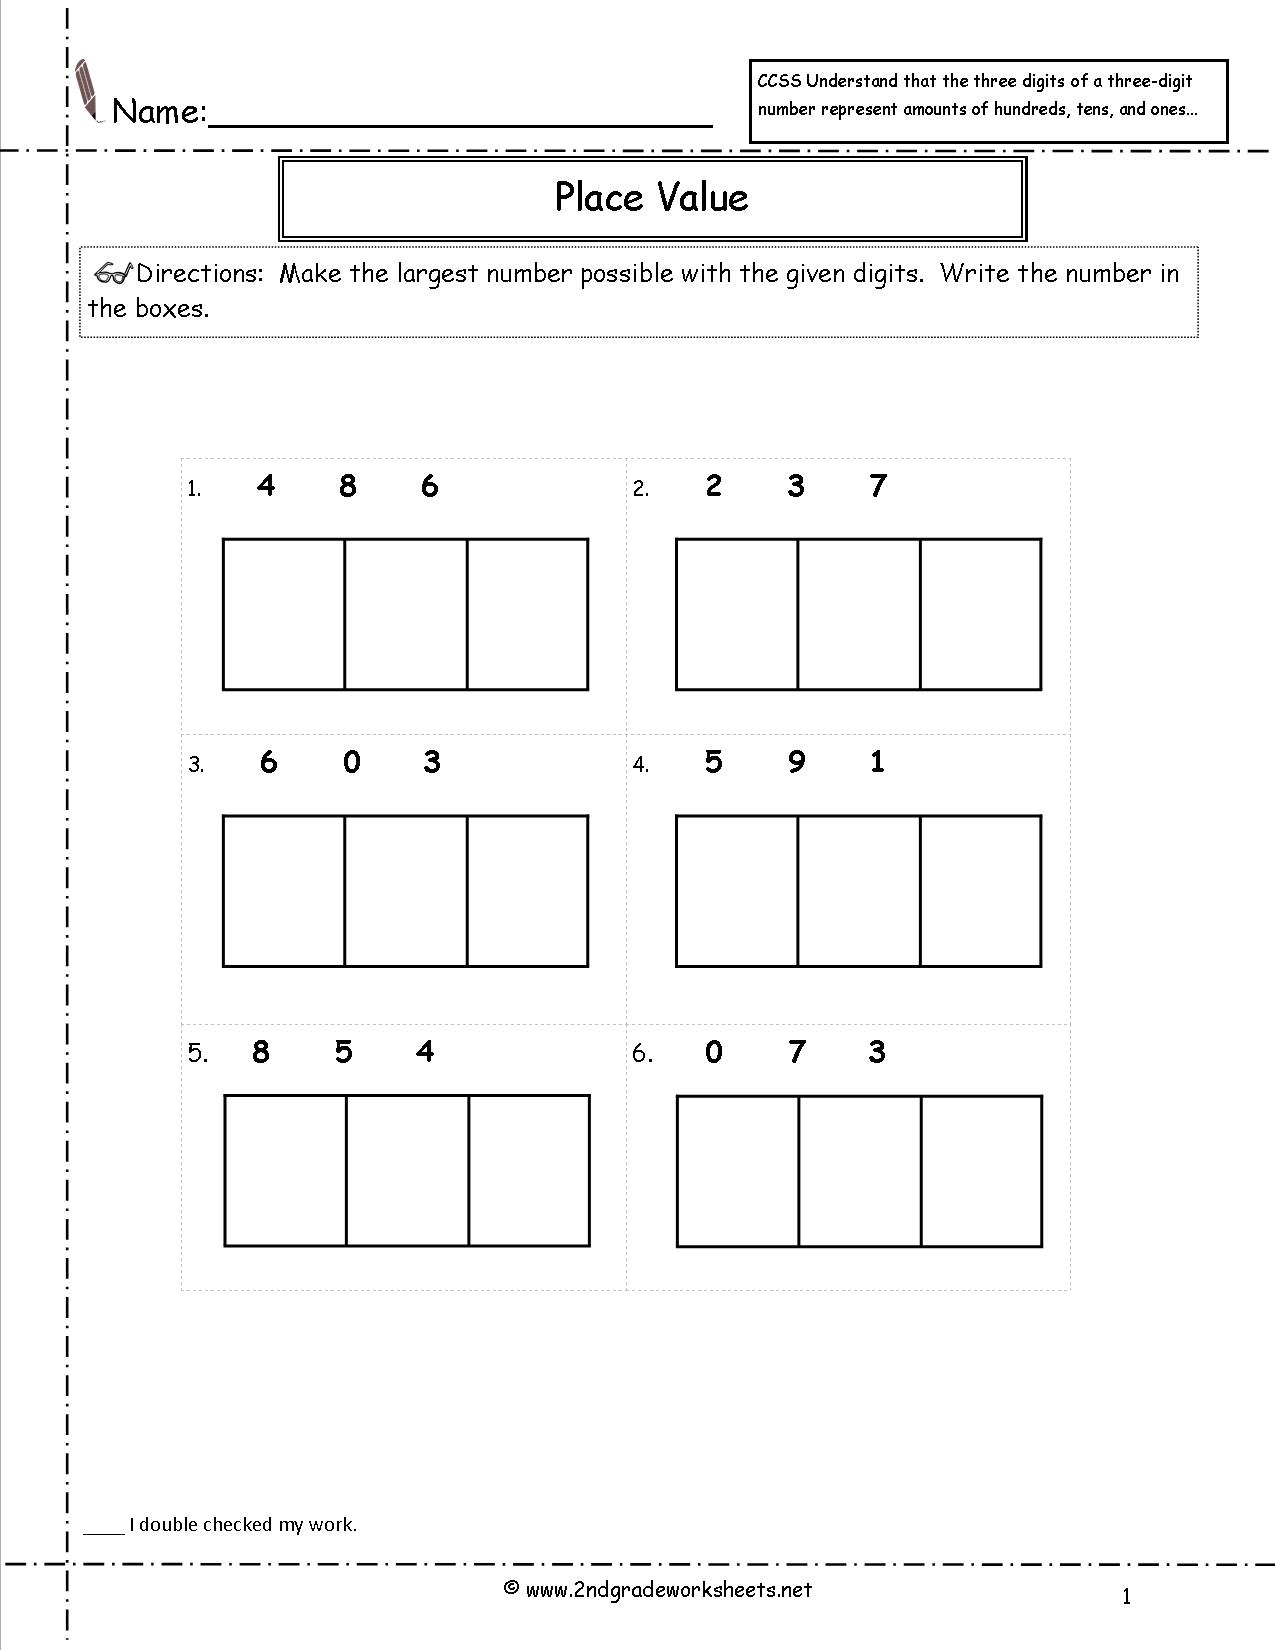 13 Best Images Of 7 Digit Place Value Worksheets